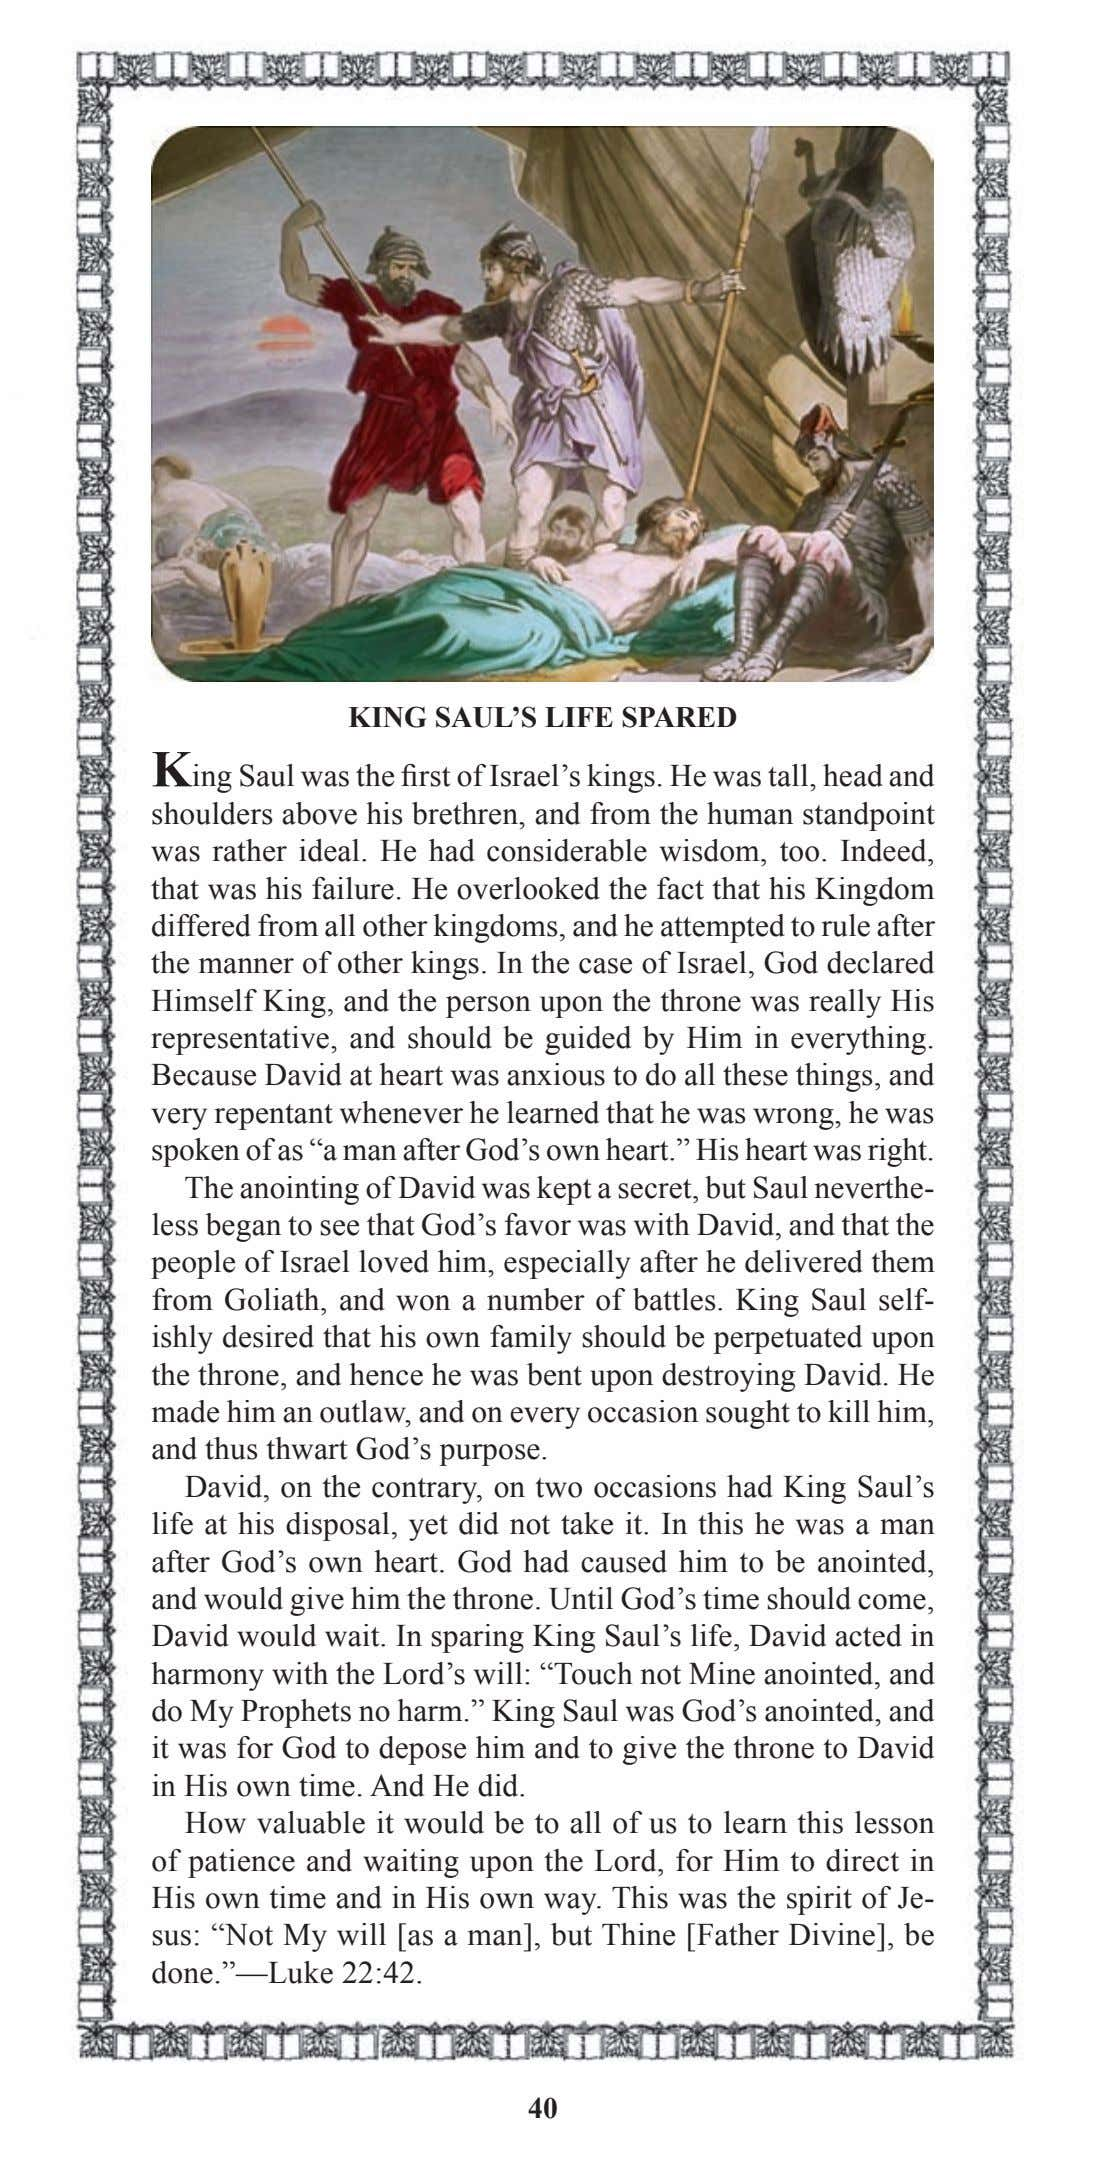 KING SAUL'S LIFE SPARED King Saul was the first of Israel's kings. He was tall,